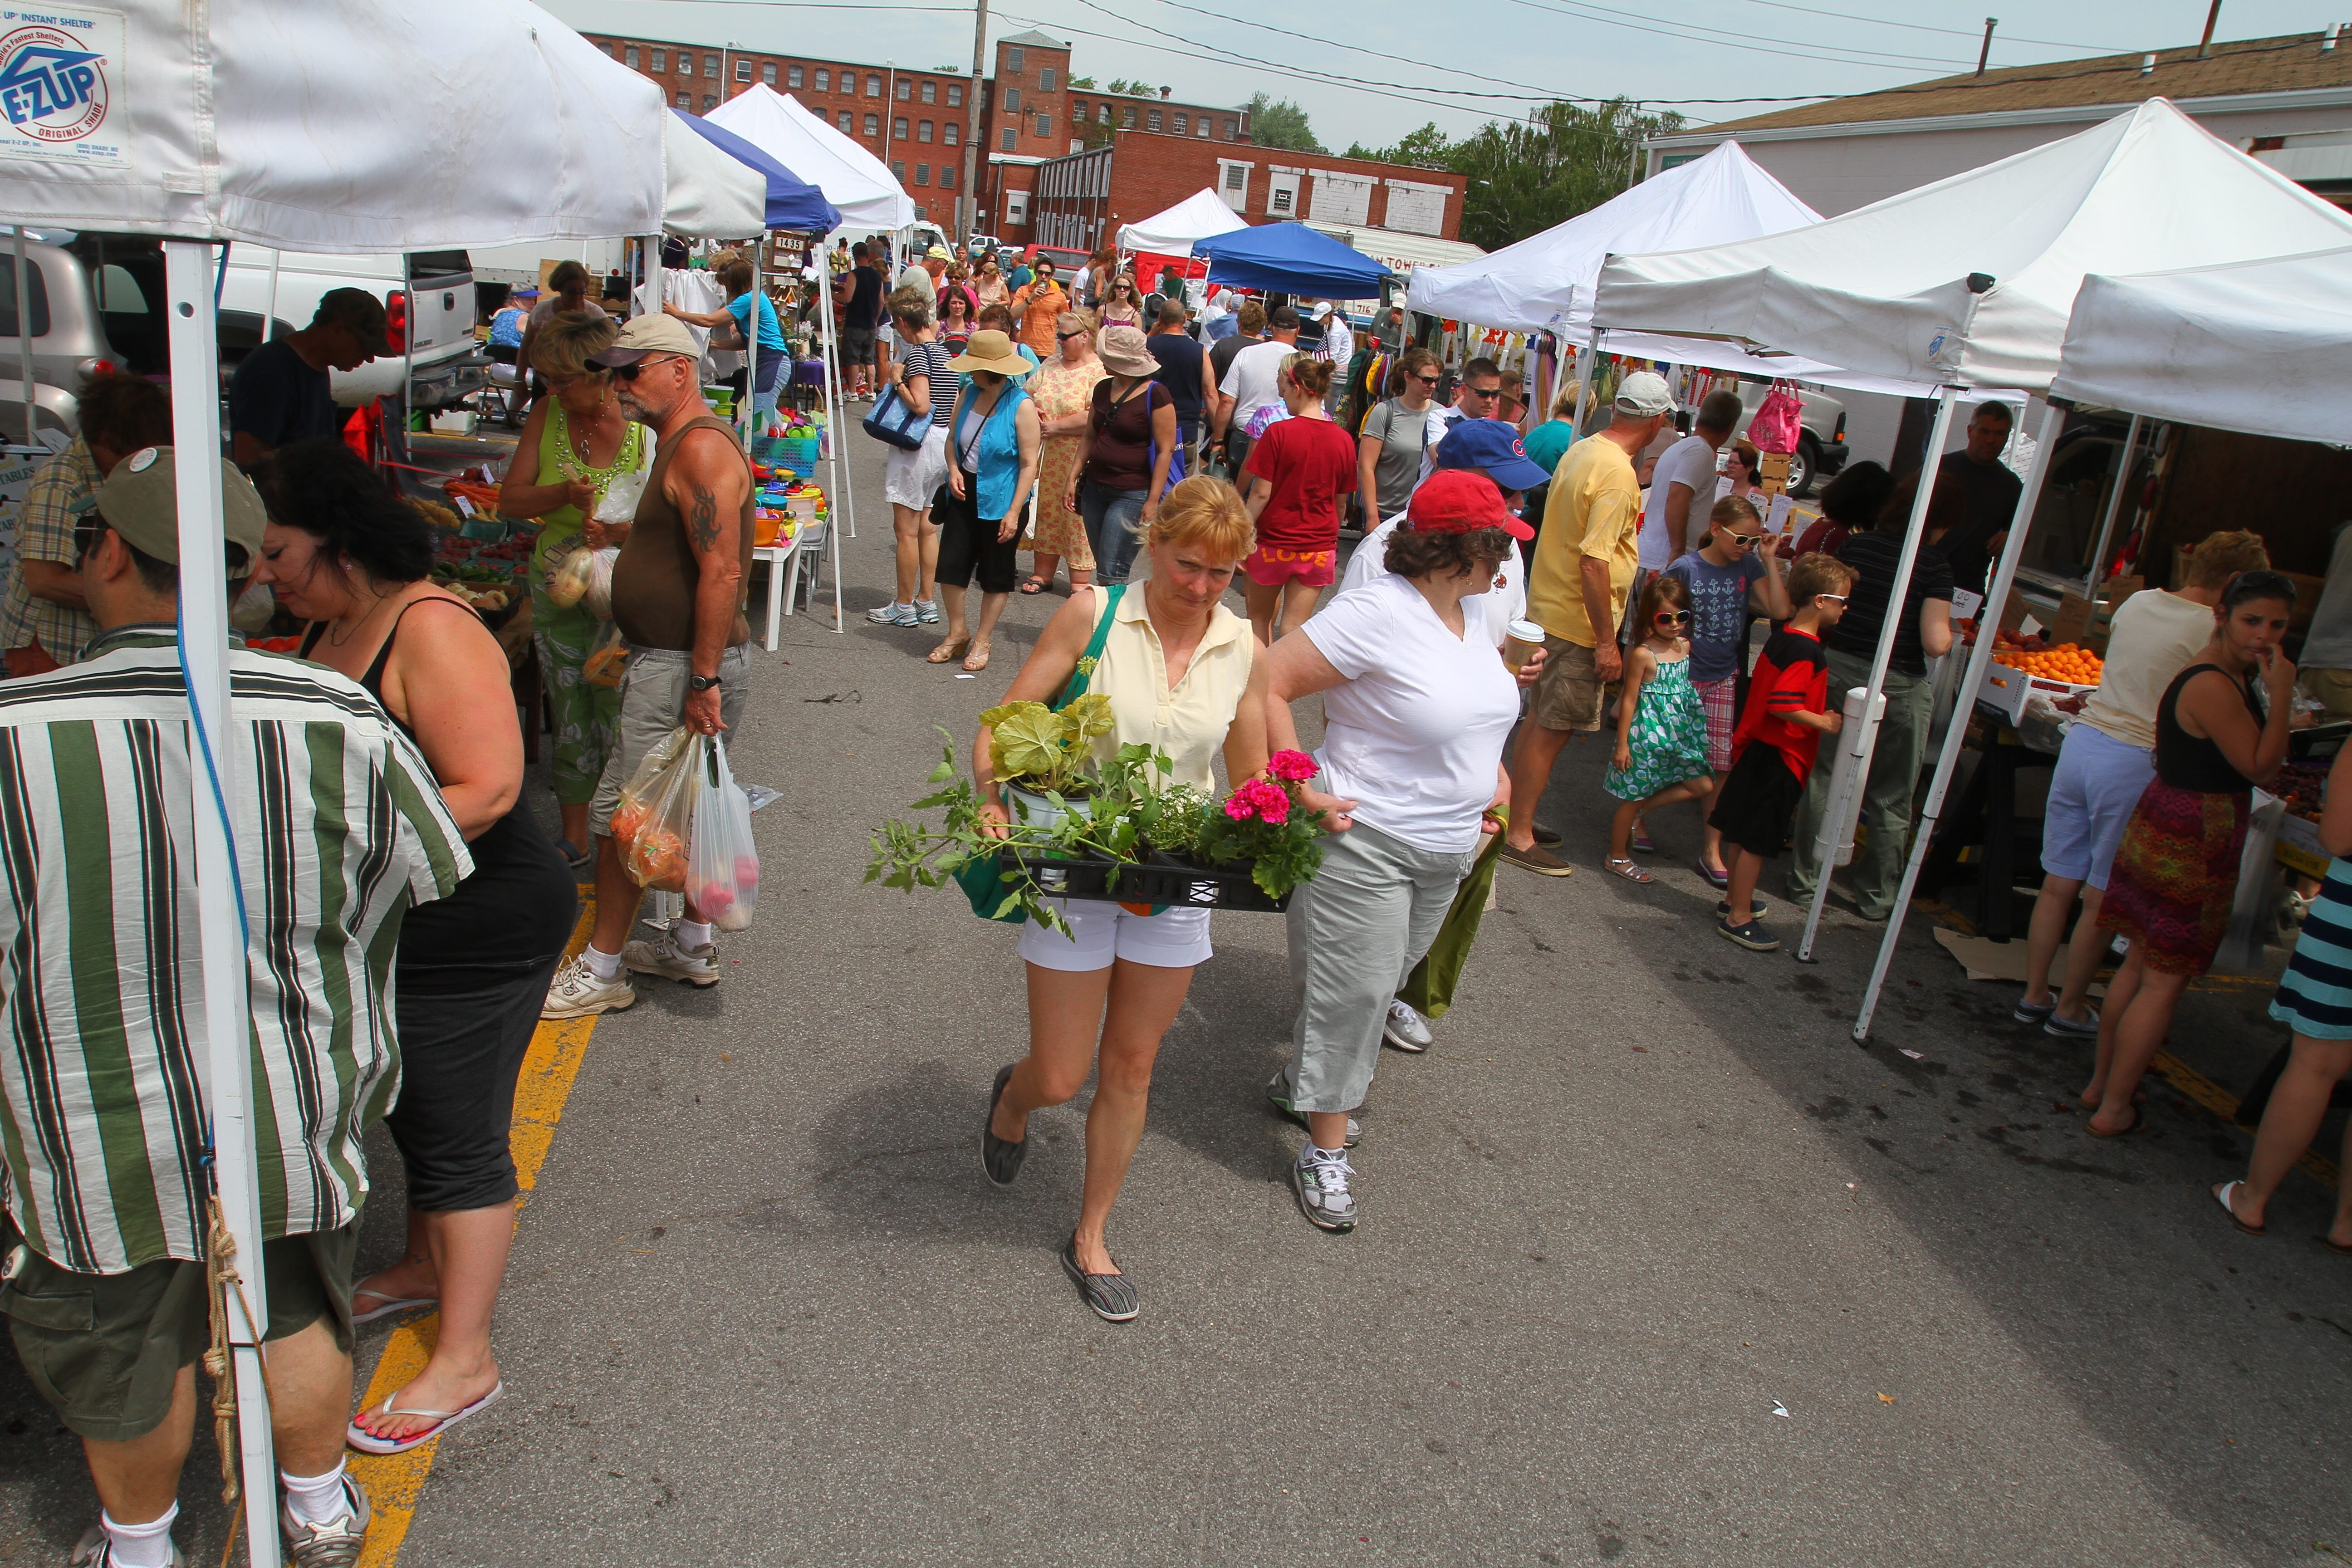 A new initiative seeks to teach healthy cooking using fresh ingredients, such as those found at farmers' markets.